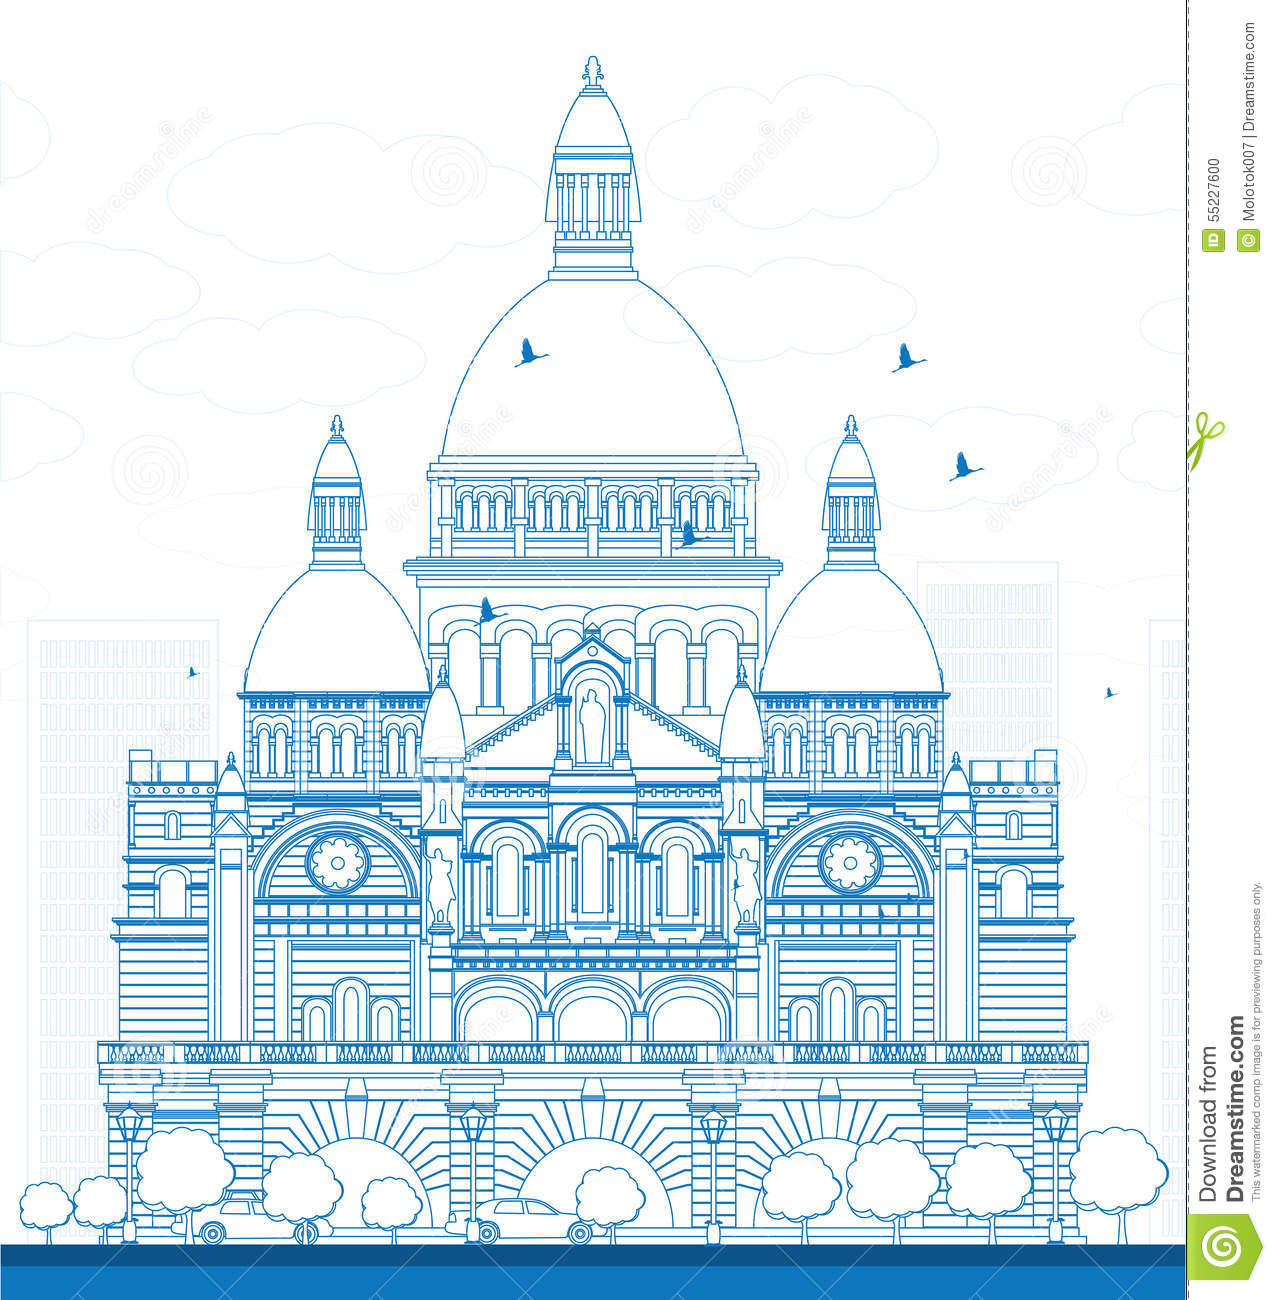 Basilica of the sacred heart clipart #13